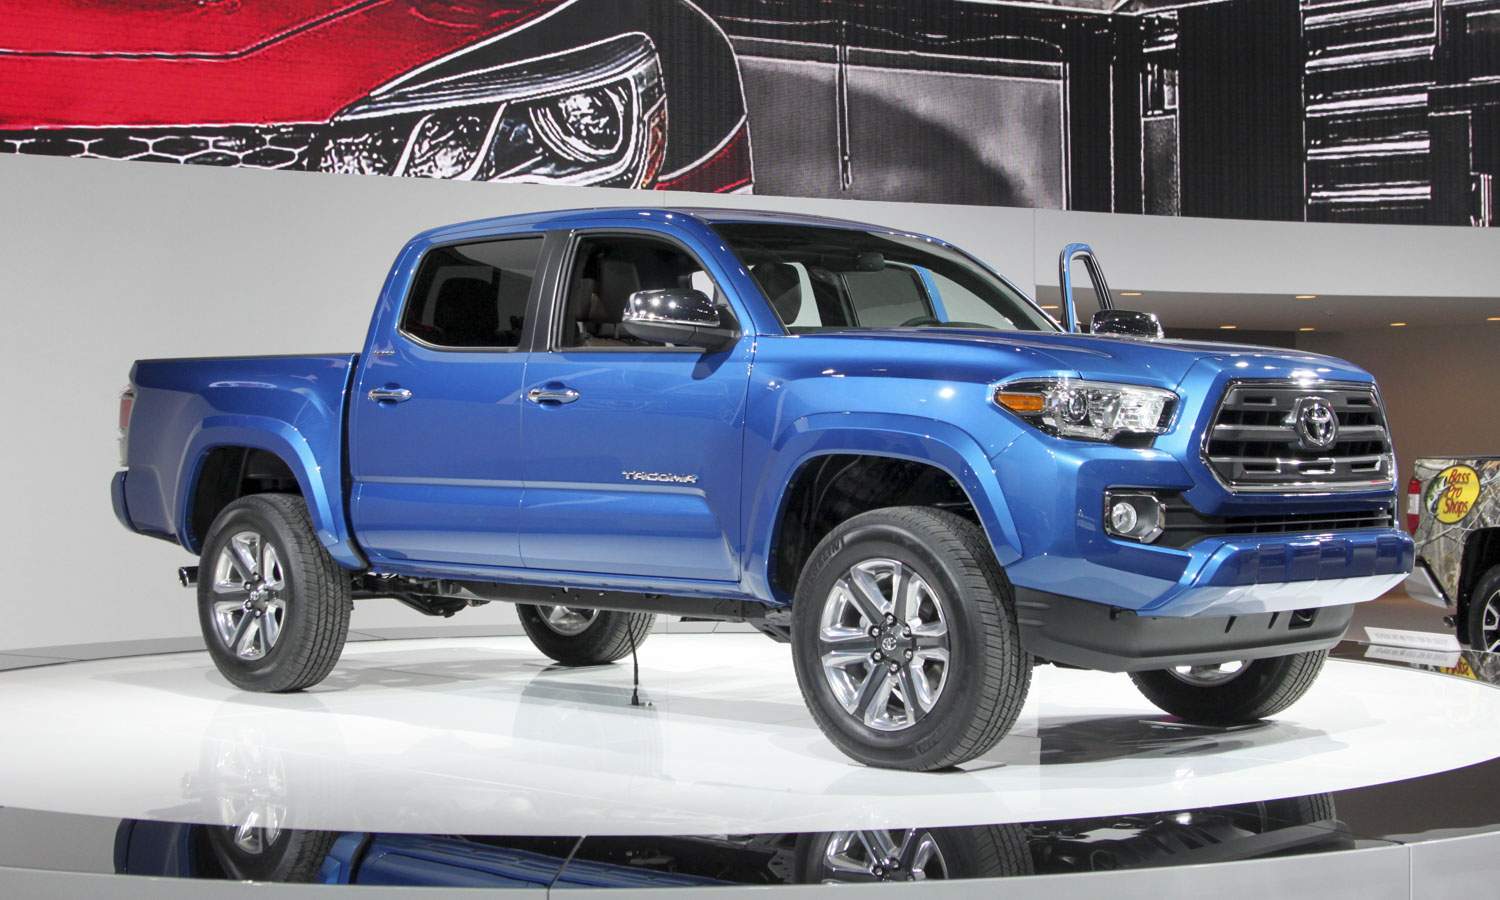 2016 Toyota Tacoma (c) Perry Stern